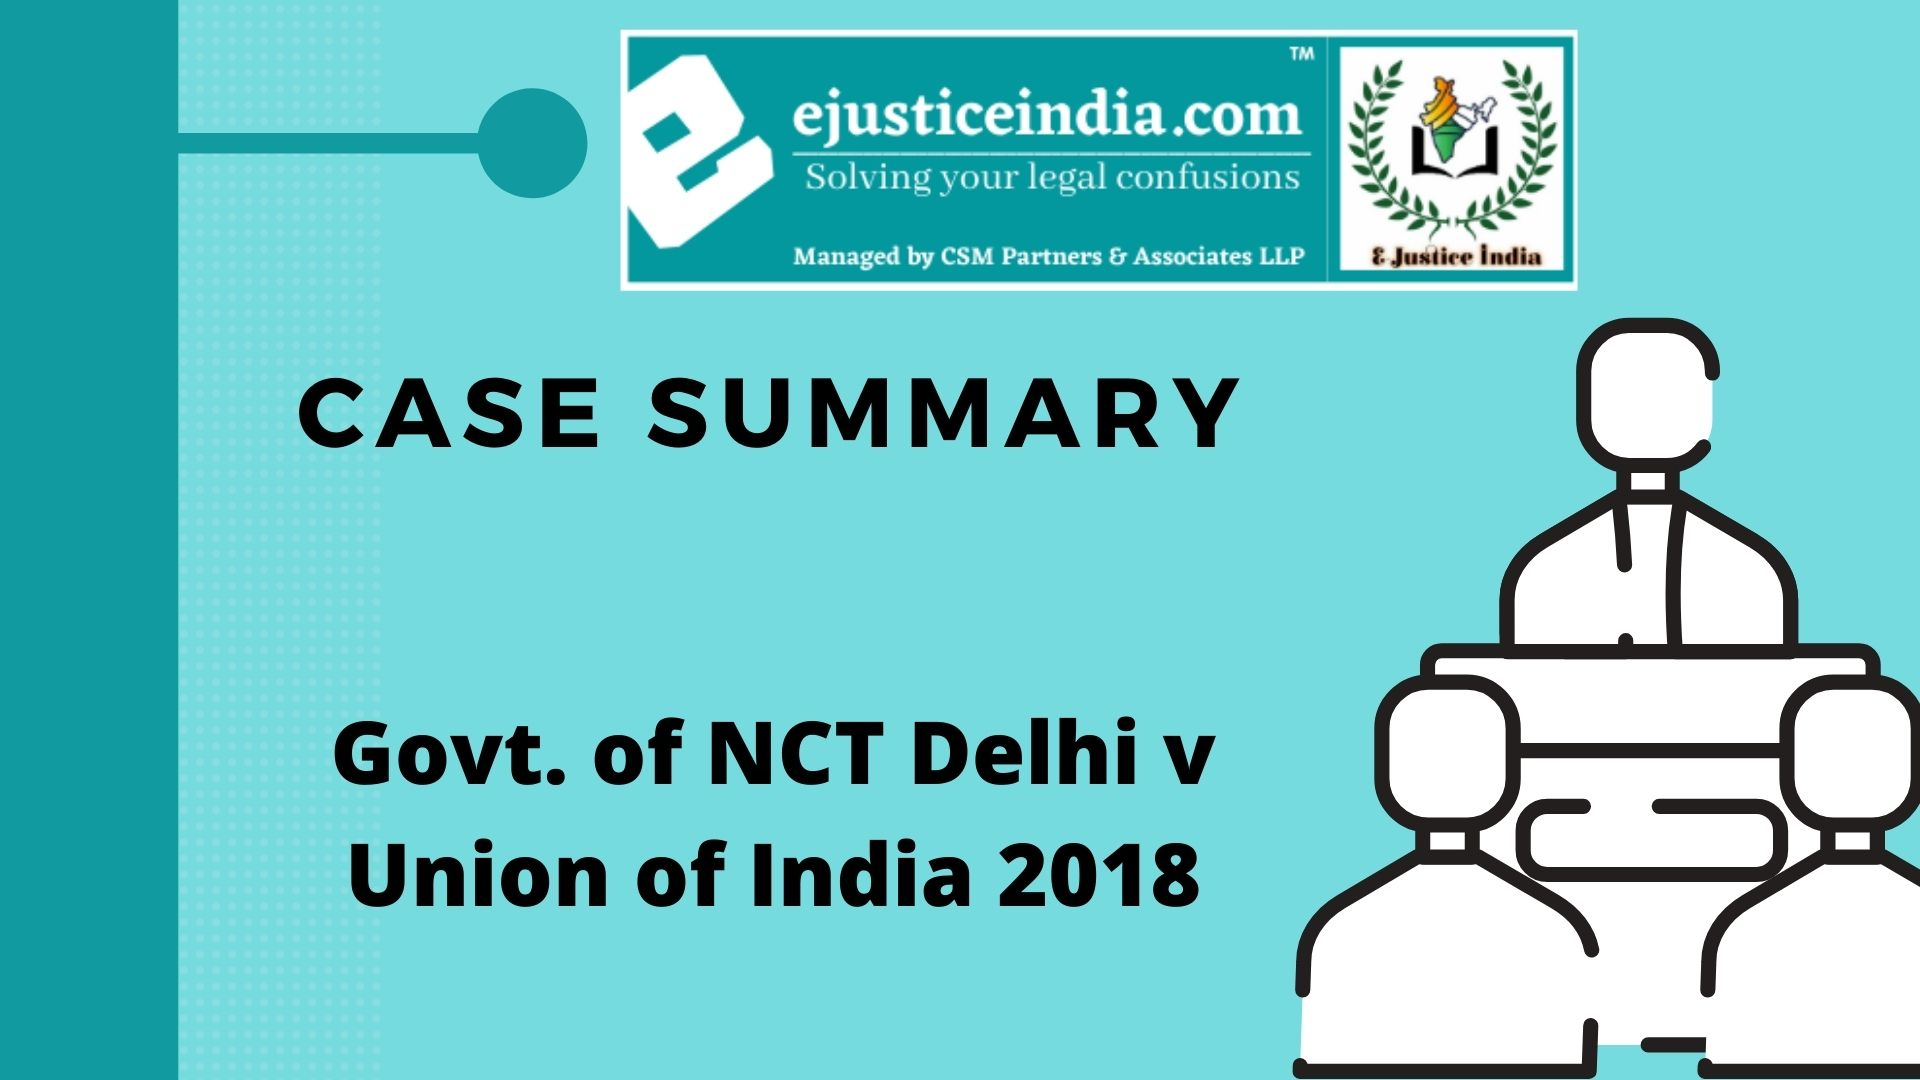 Govt. of NCT Delhi Vs. Union of India 2018